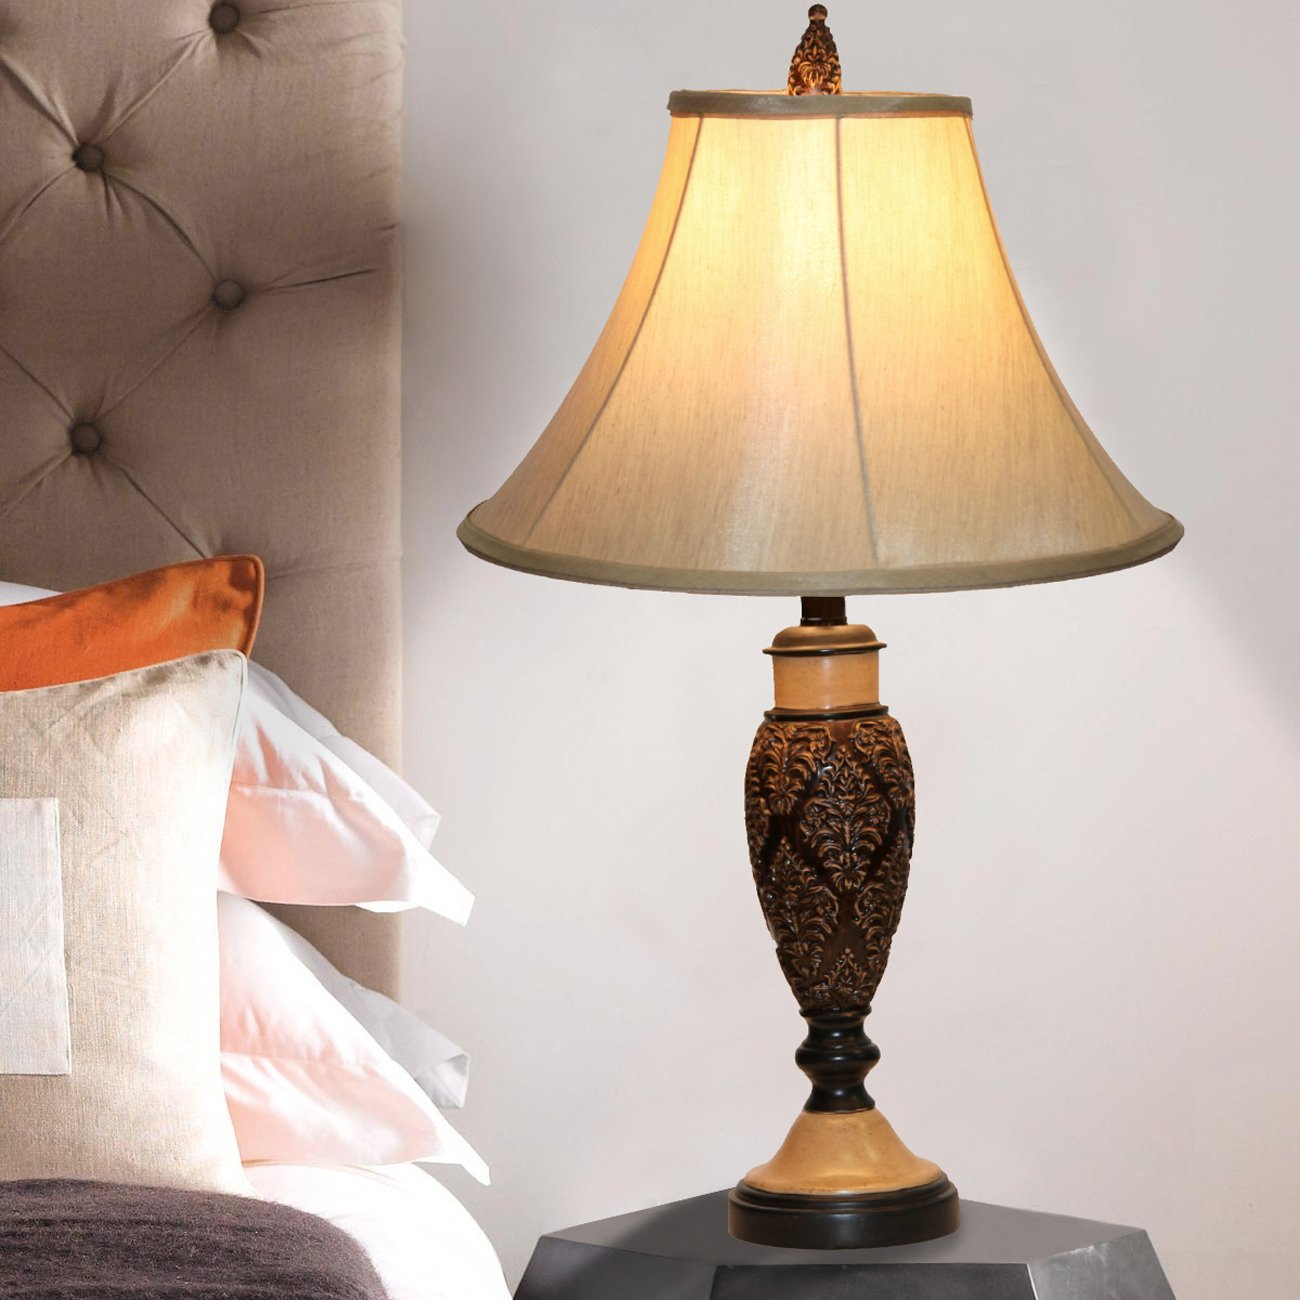 Home Source Industries LMP105 Traditional Espresso Table Lamp with Fabric Shade, 25-Inch Tall